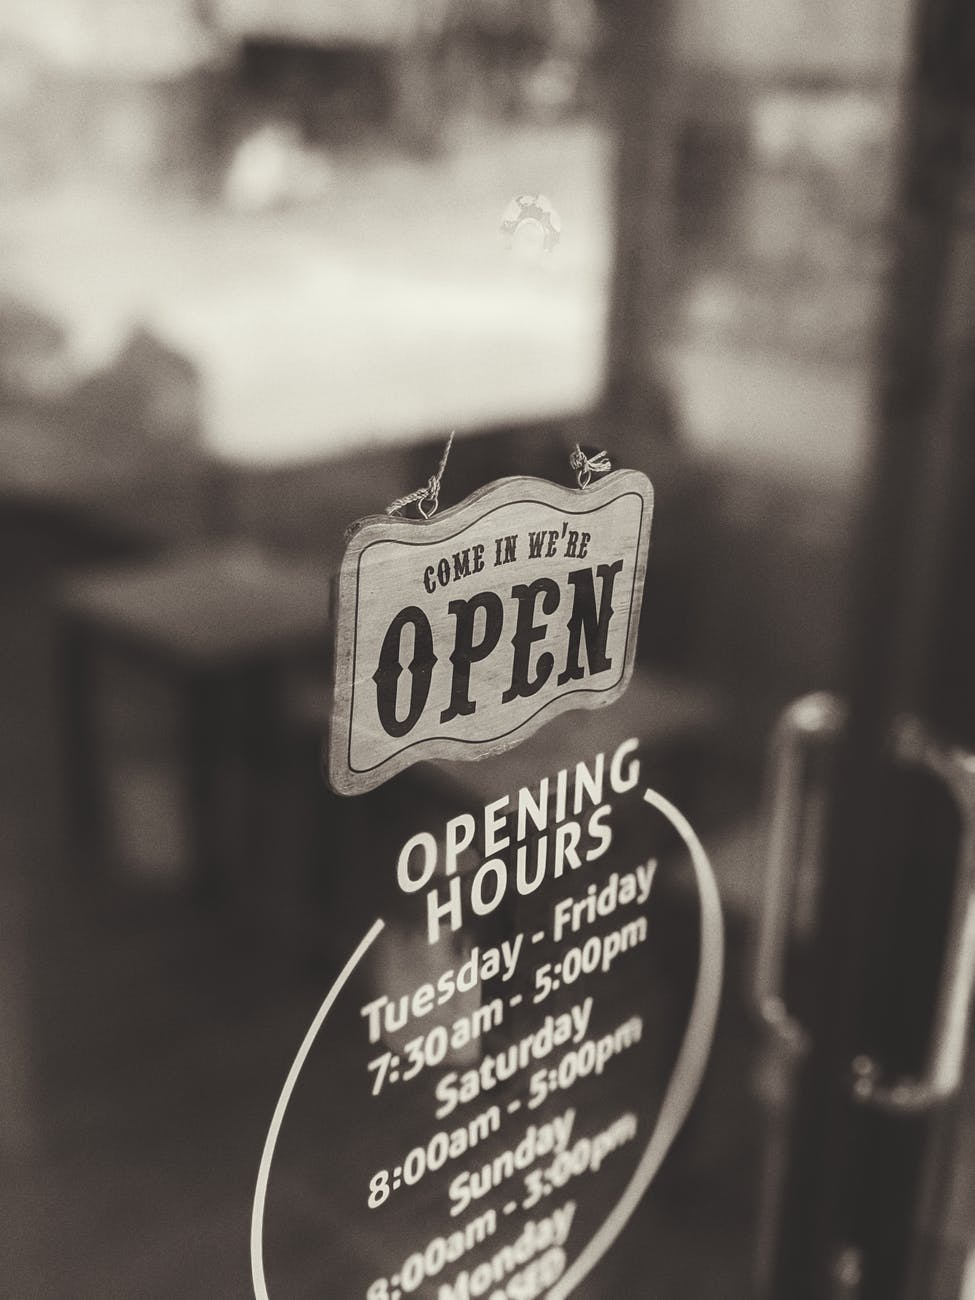 an open sign hanging on the door of a business establishment